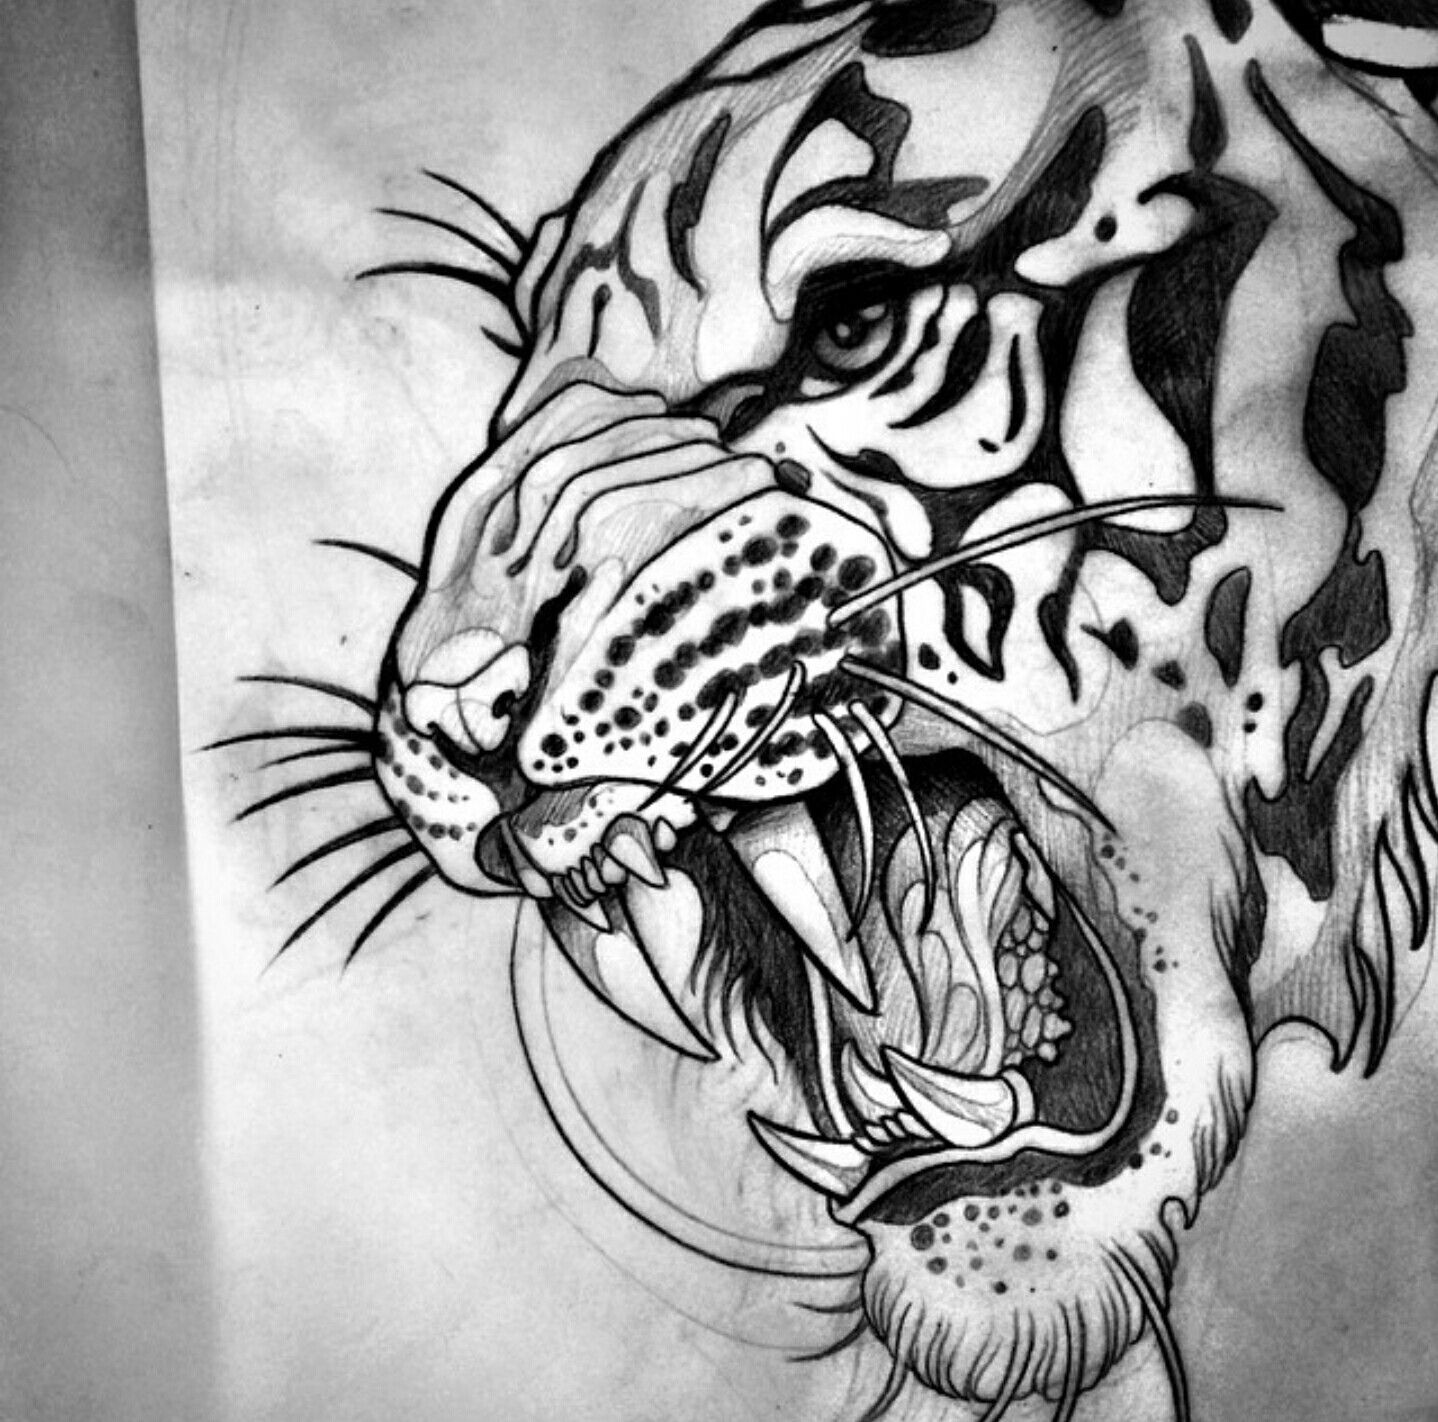 Sam Clark | Tiger tattoo, Tiger head tattoo, Tiger art